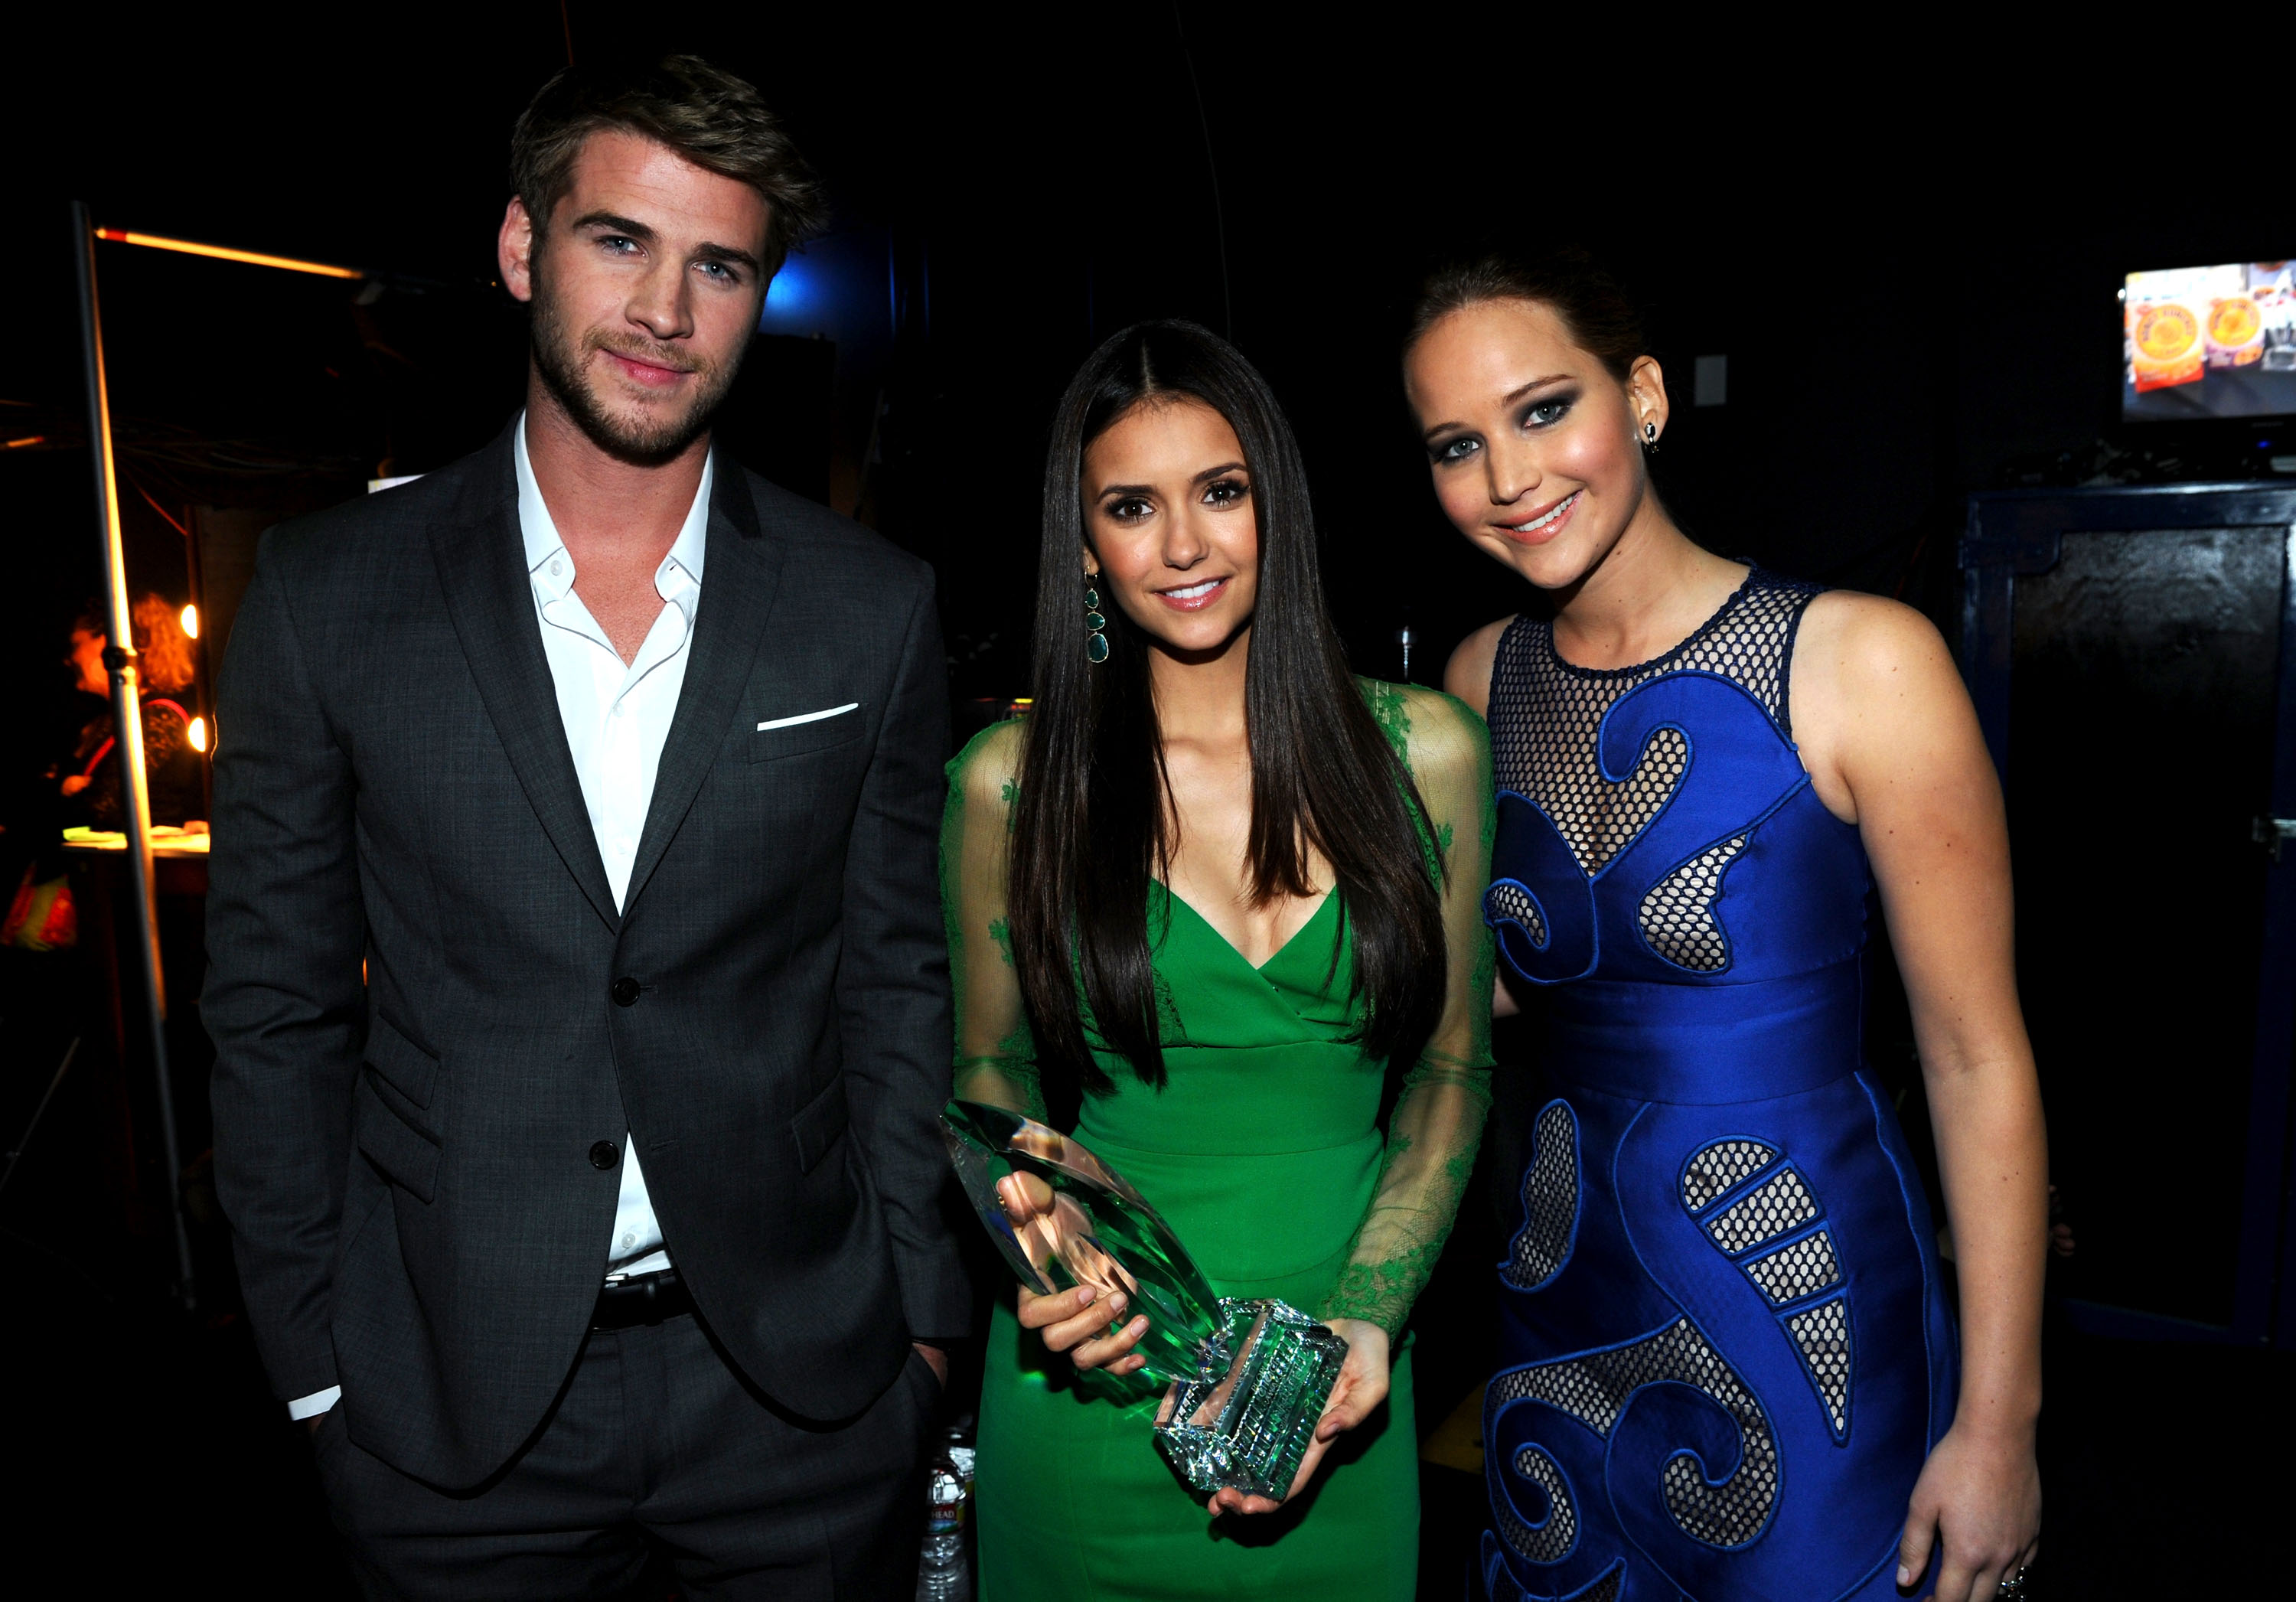 Liam hemsworth et nina dobrev dating